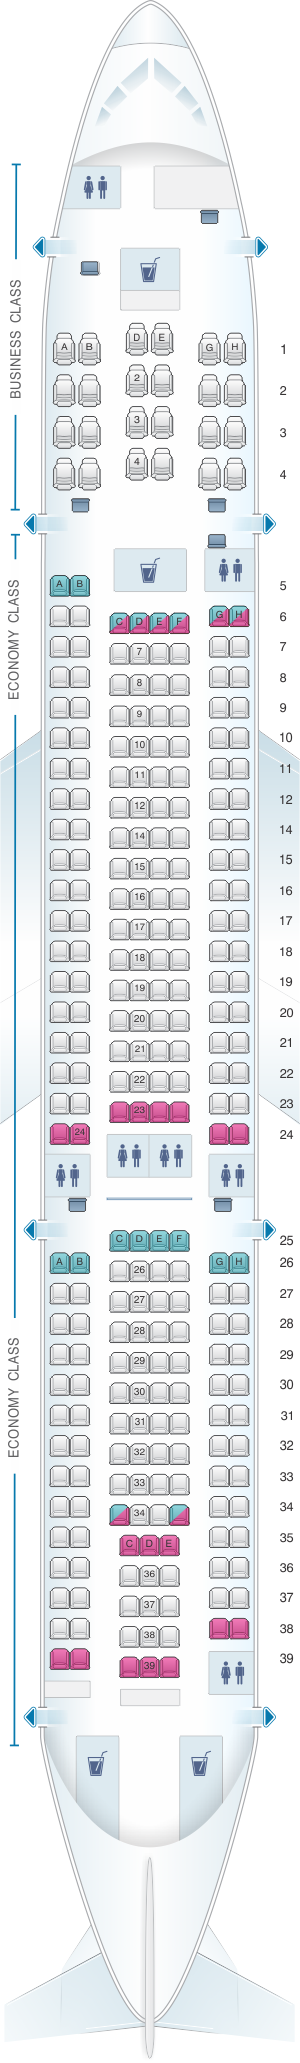 Seat map for Air Mauritius Airbus A330 200